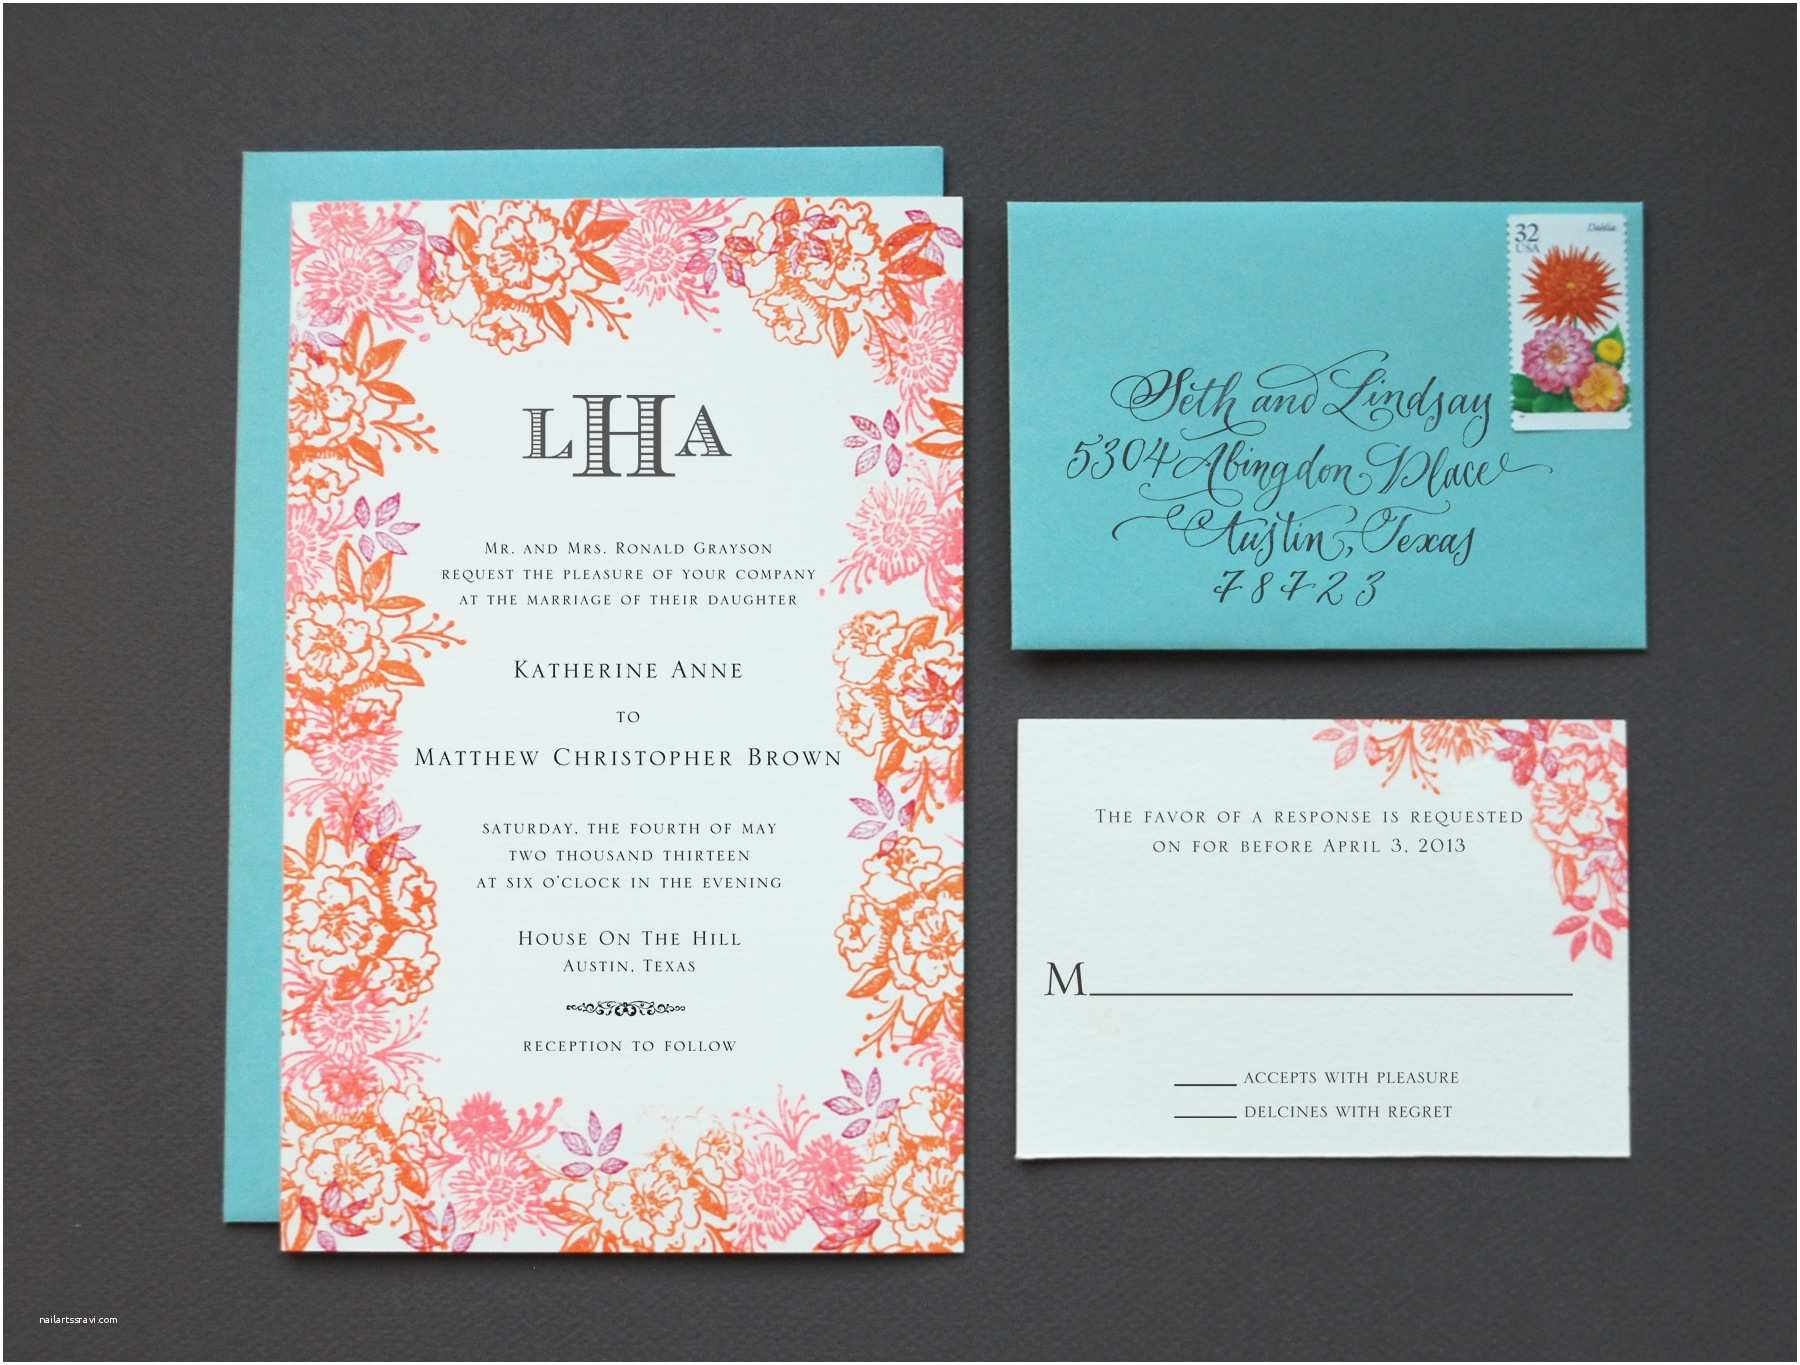 Postage Stamps for Wedding Invitations Diy Rubber Stamp Floral Wedding Invitations